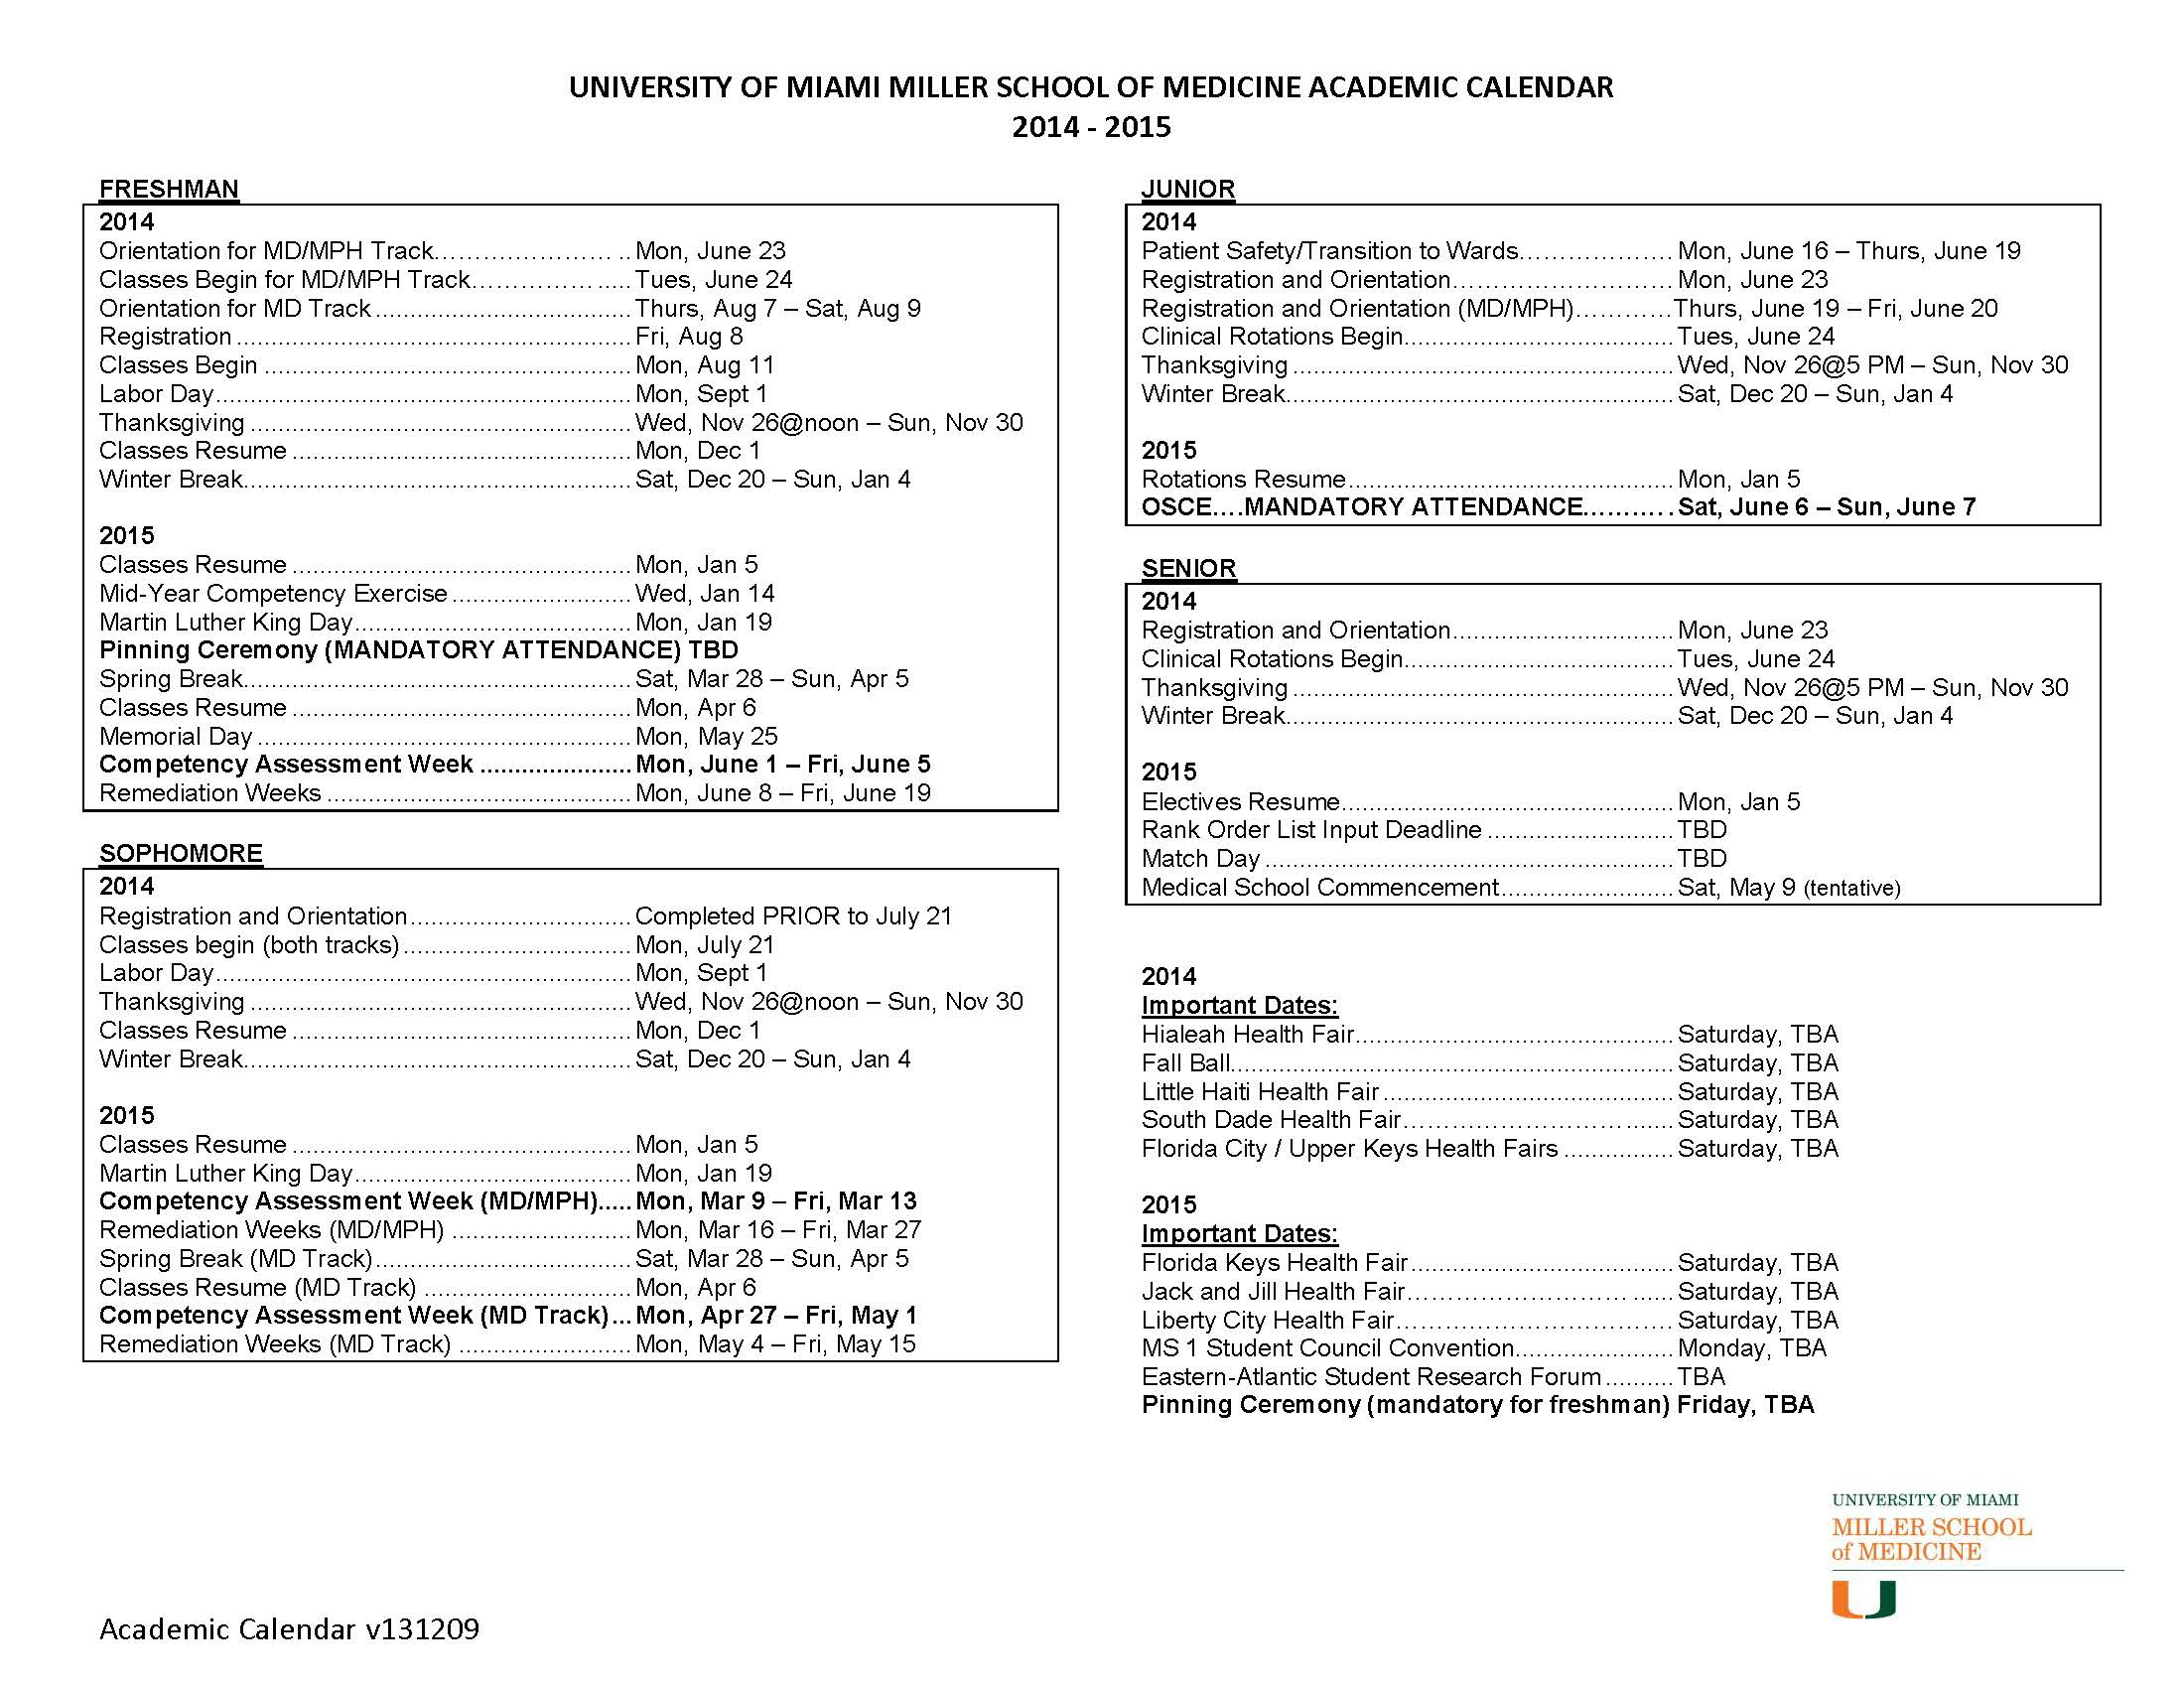 University of Florida 2014 2015 Academic Calendar